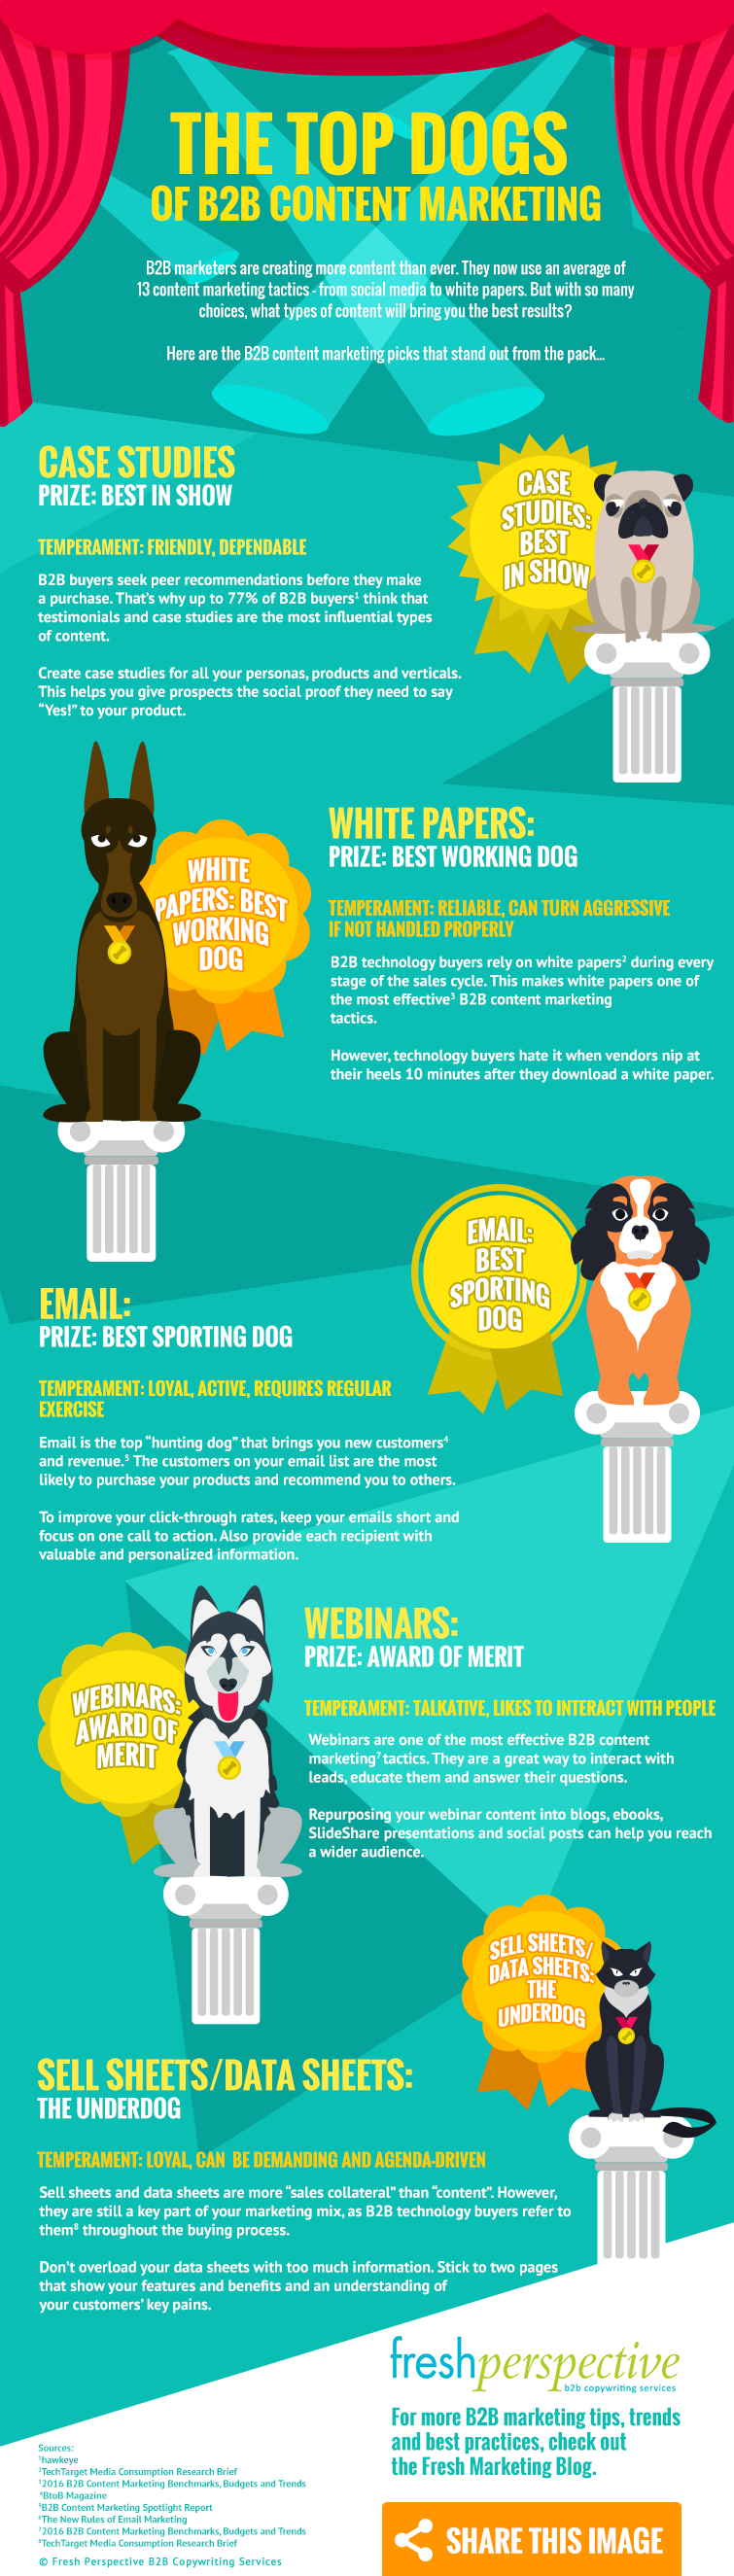 Top Dogs of B2B Content Marketing